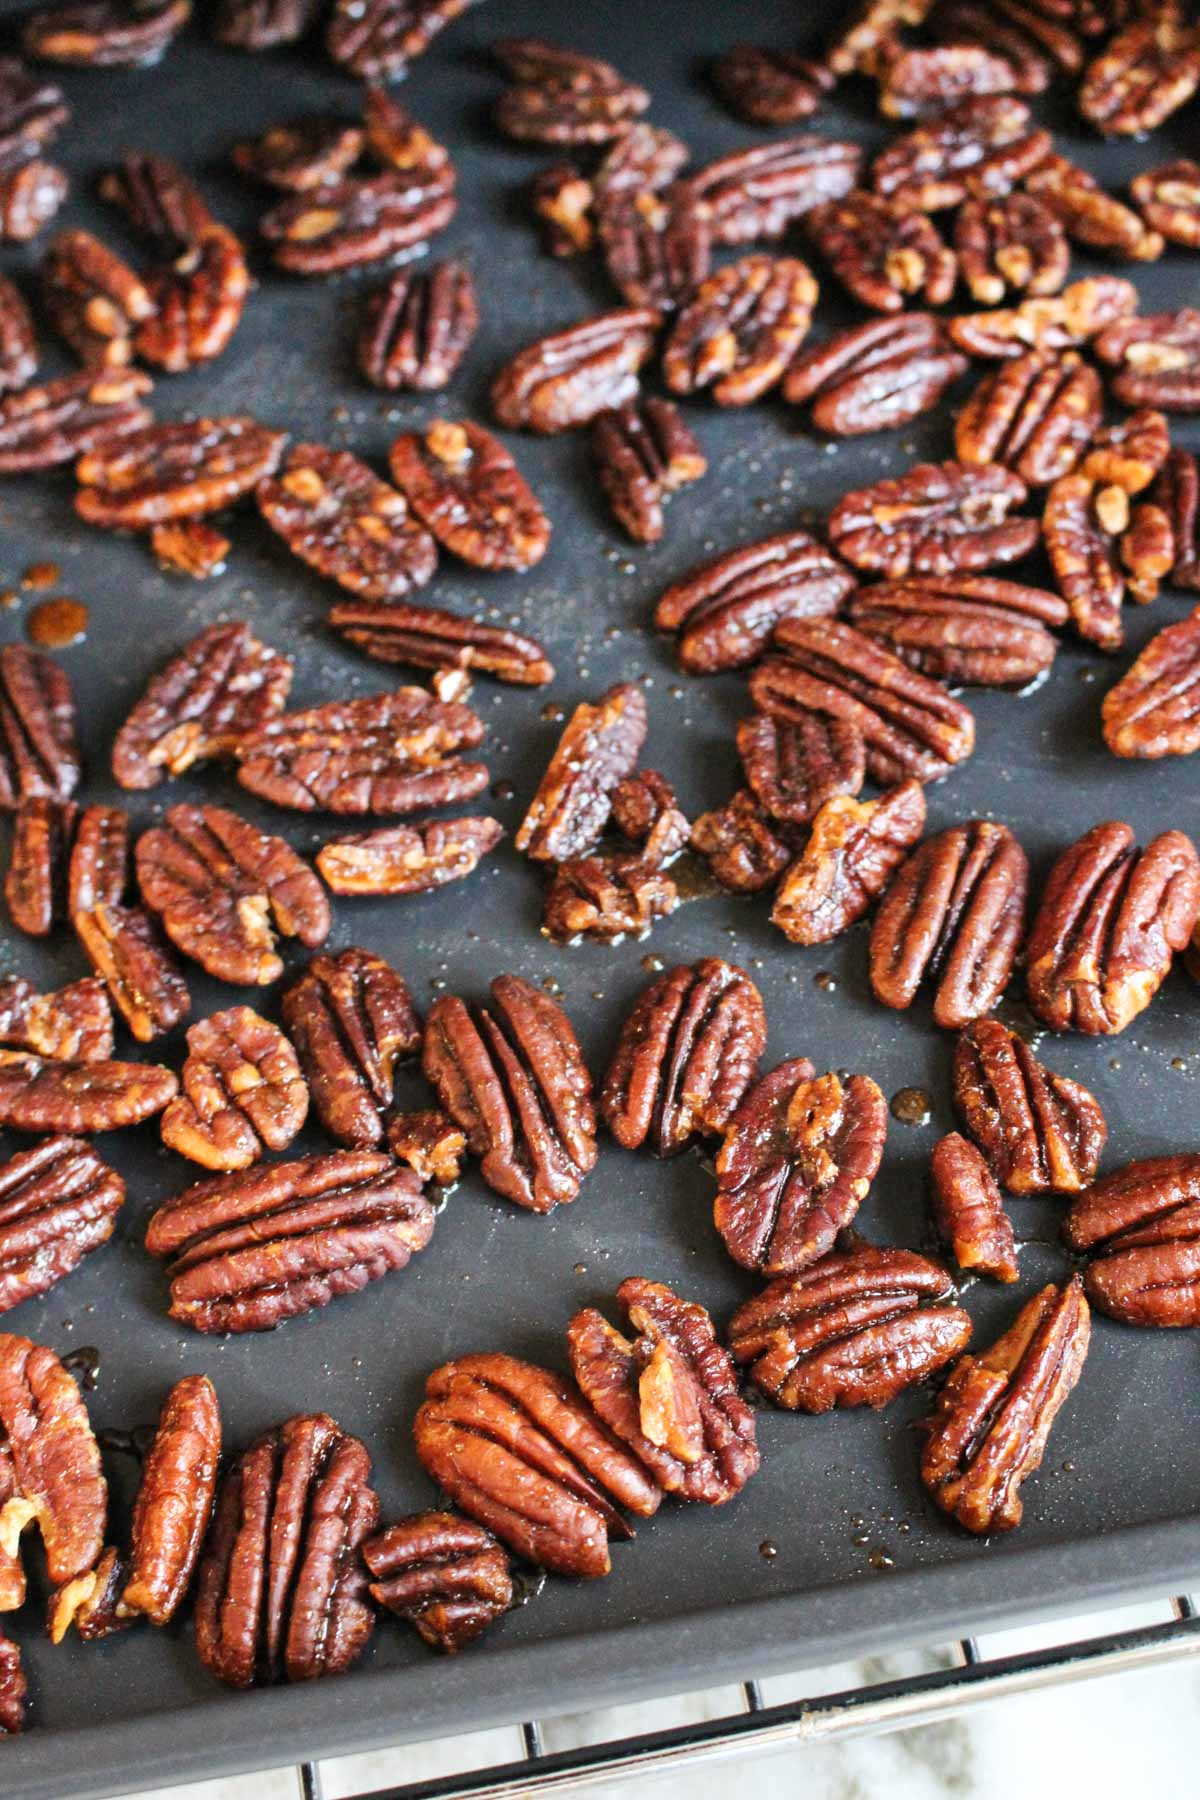 Baking sheet with candied pecans.